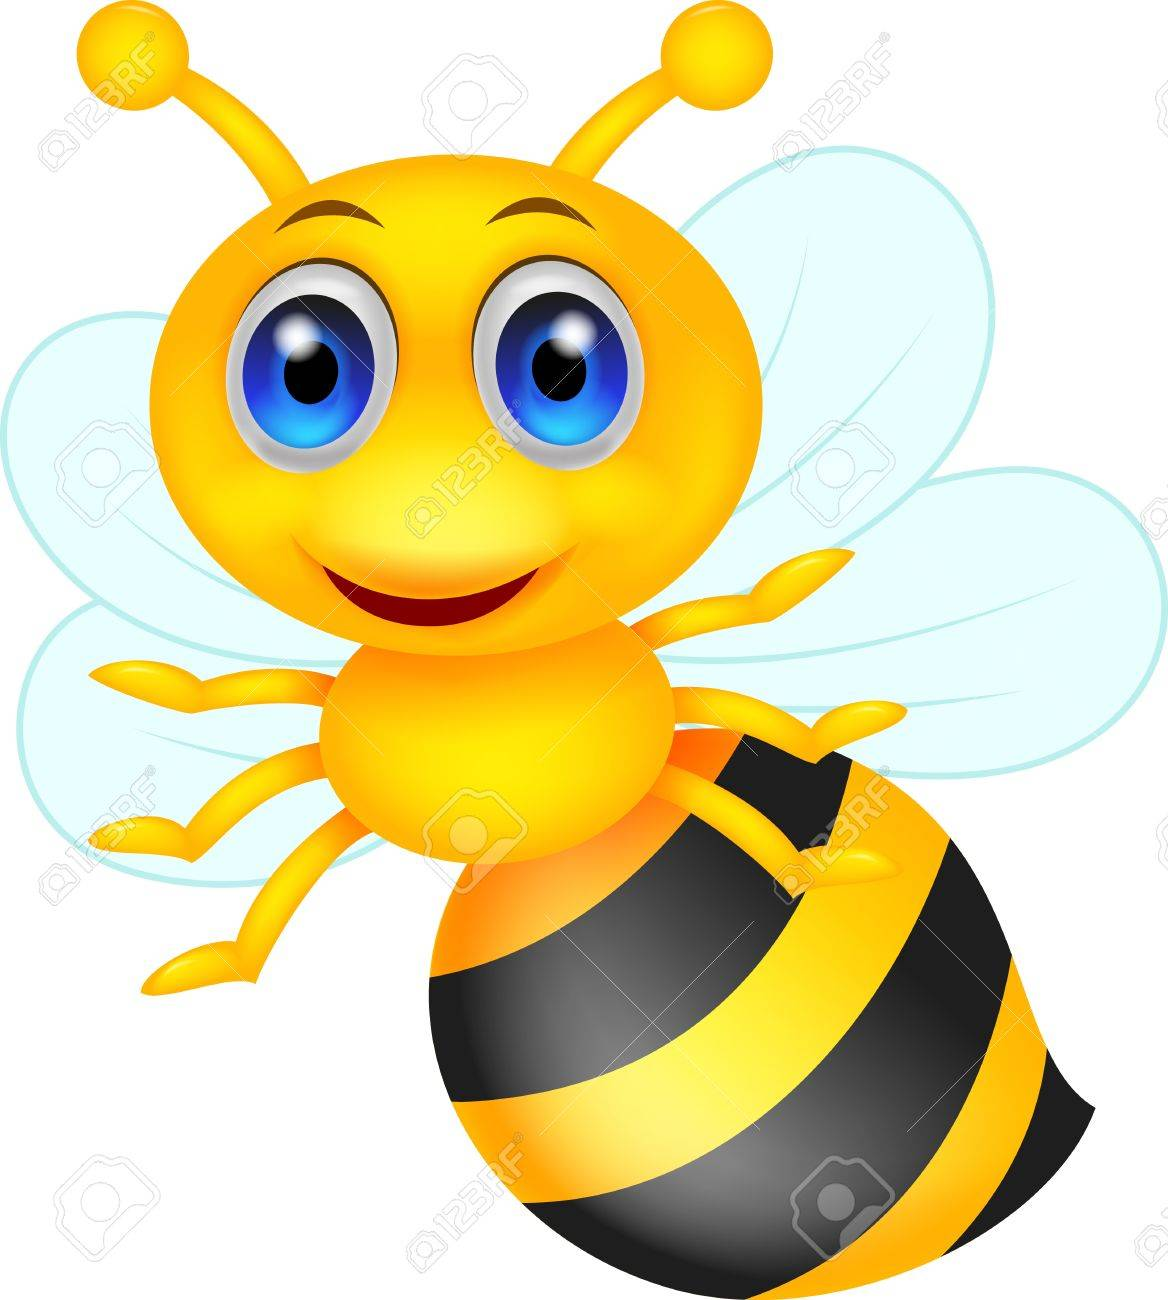 cute bee cartoon royalty free cliparts vectors and stock